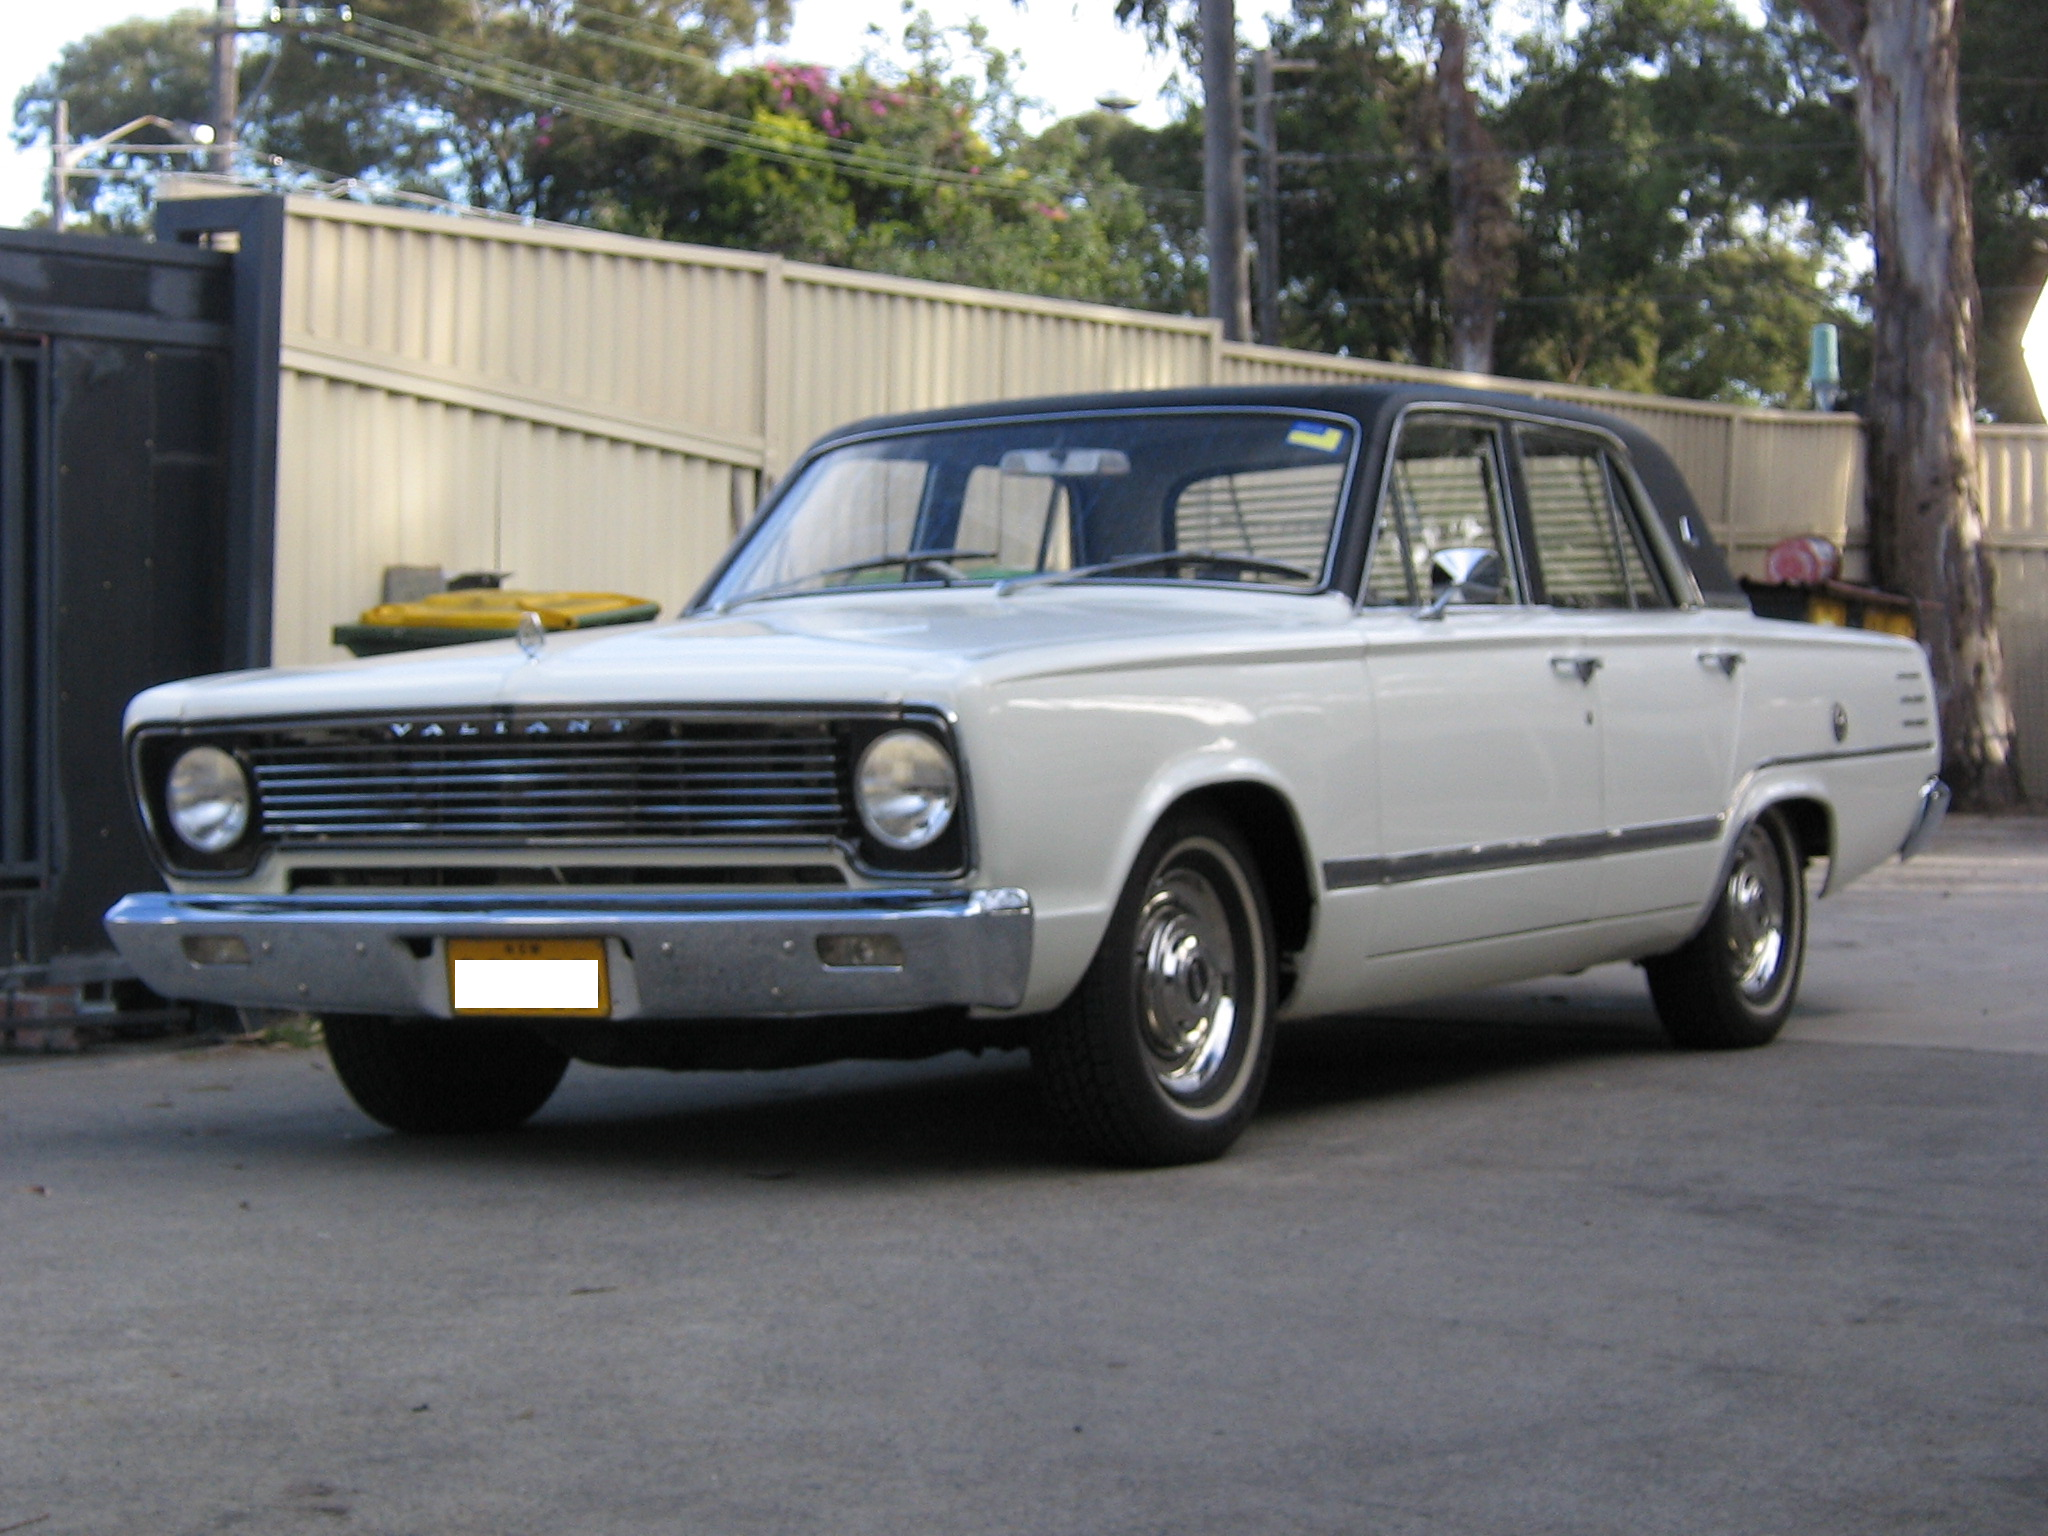 Chrysler Valiant #14